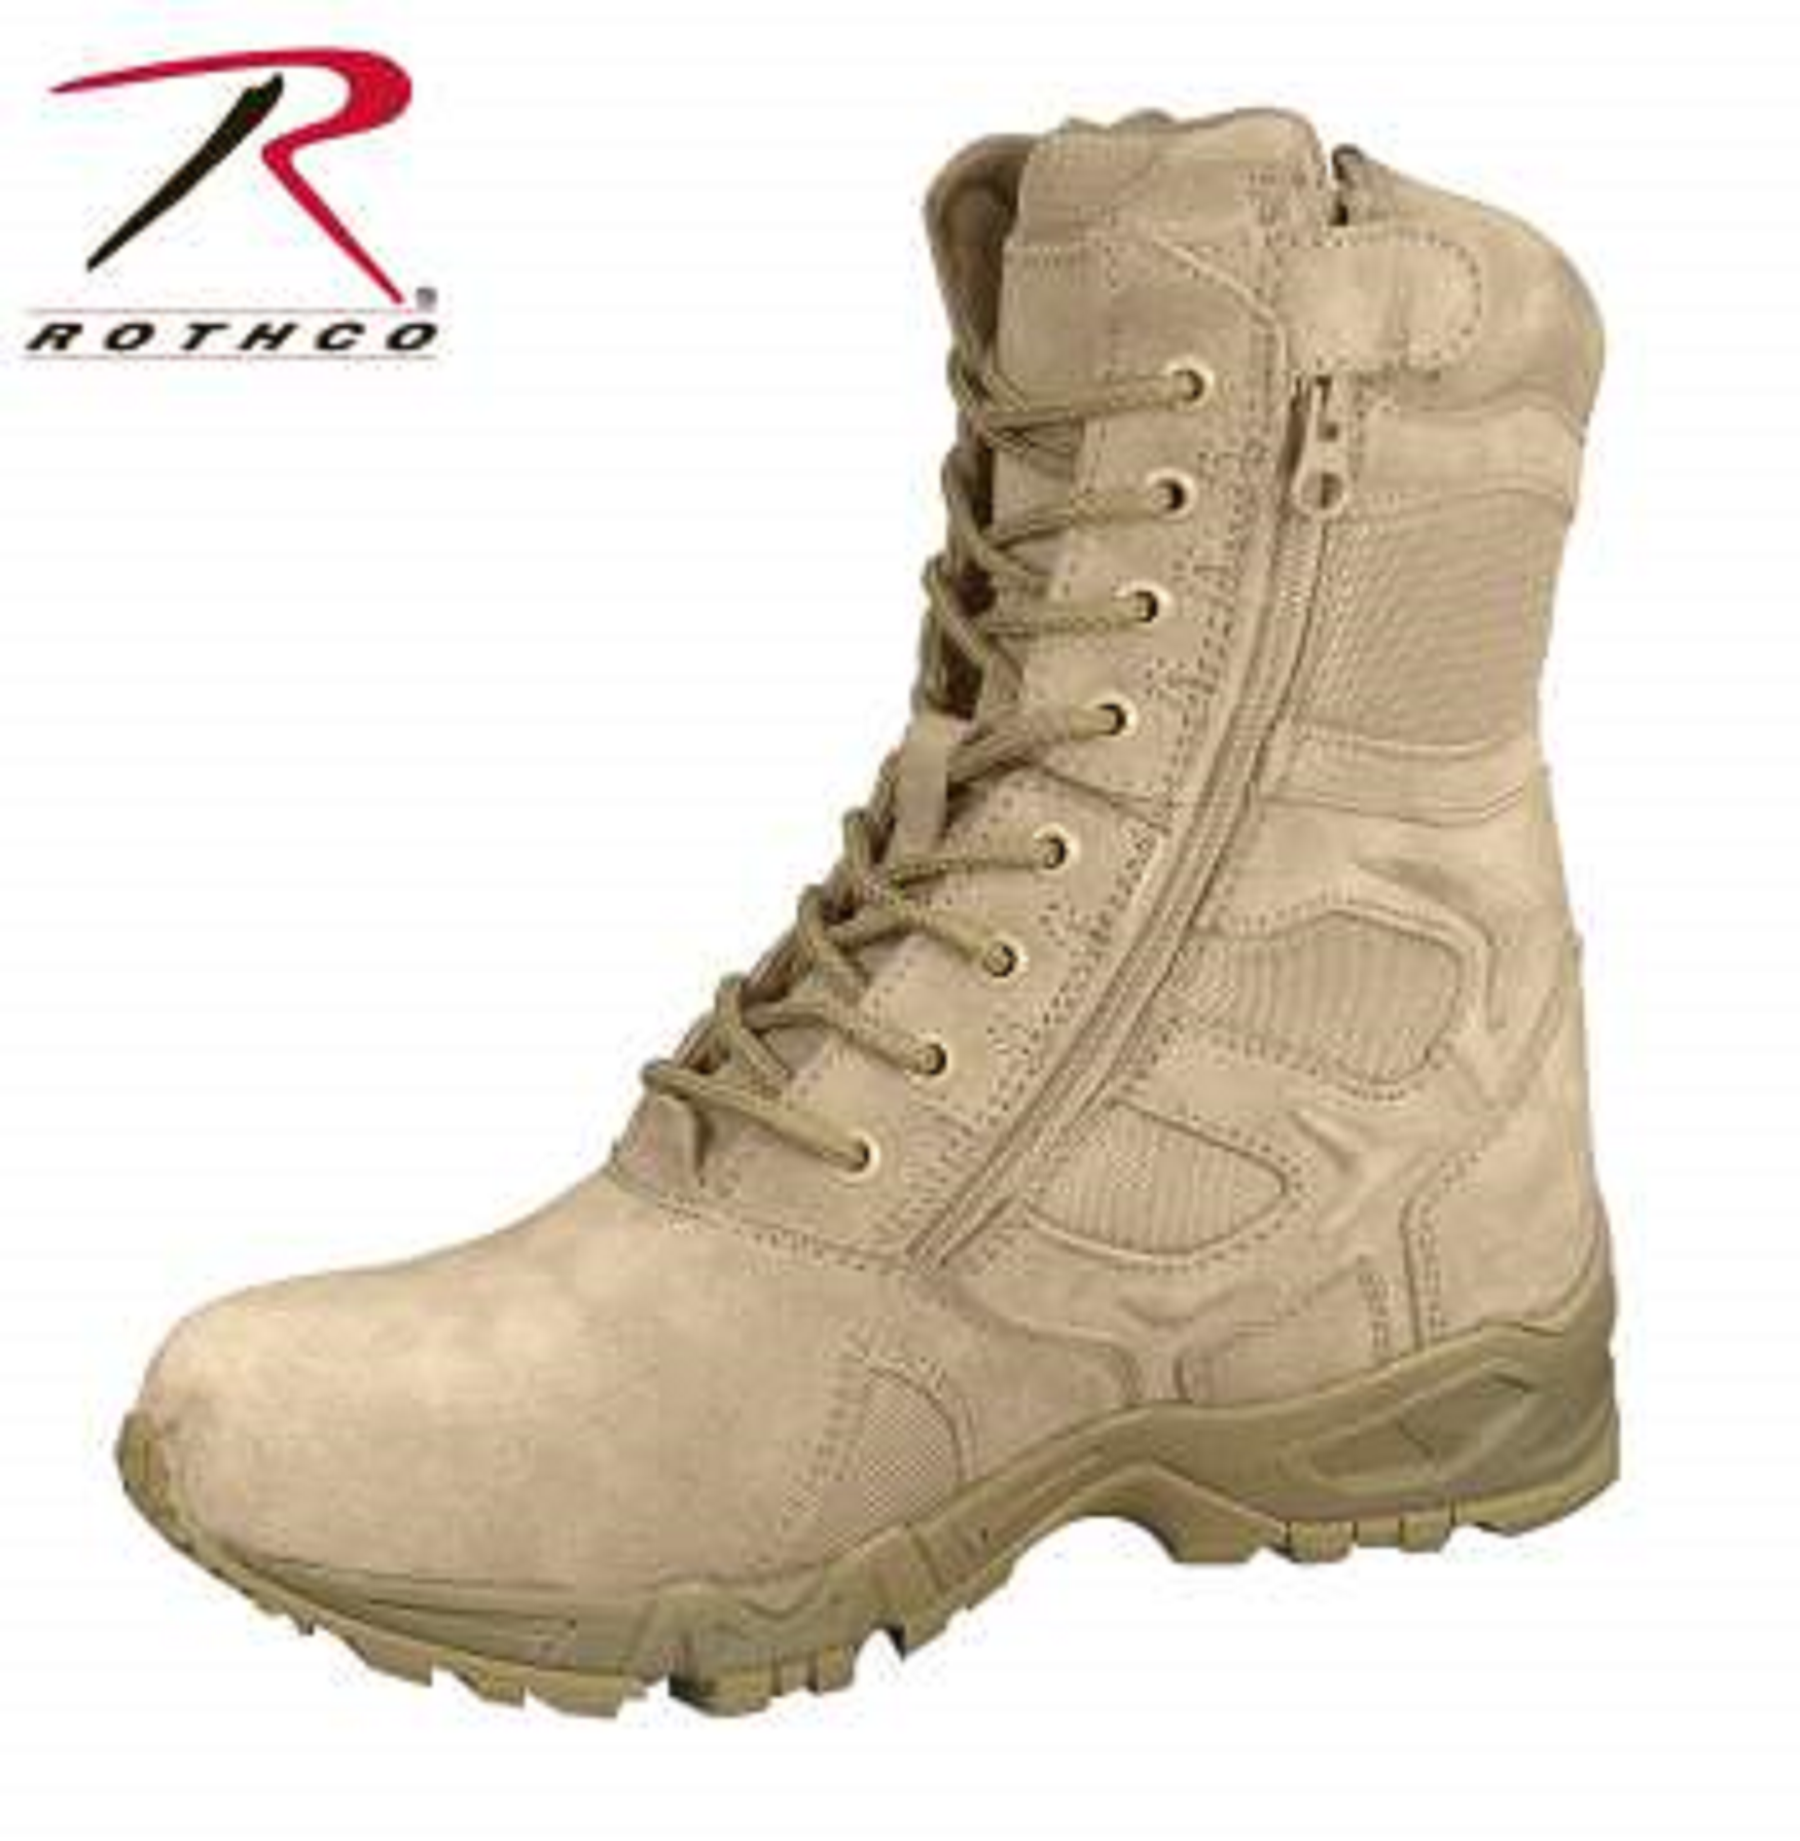 "Rothco Forced Entry 8"" Deployment Boots With Side Zipper Coyote Brown"